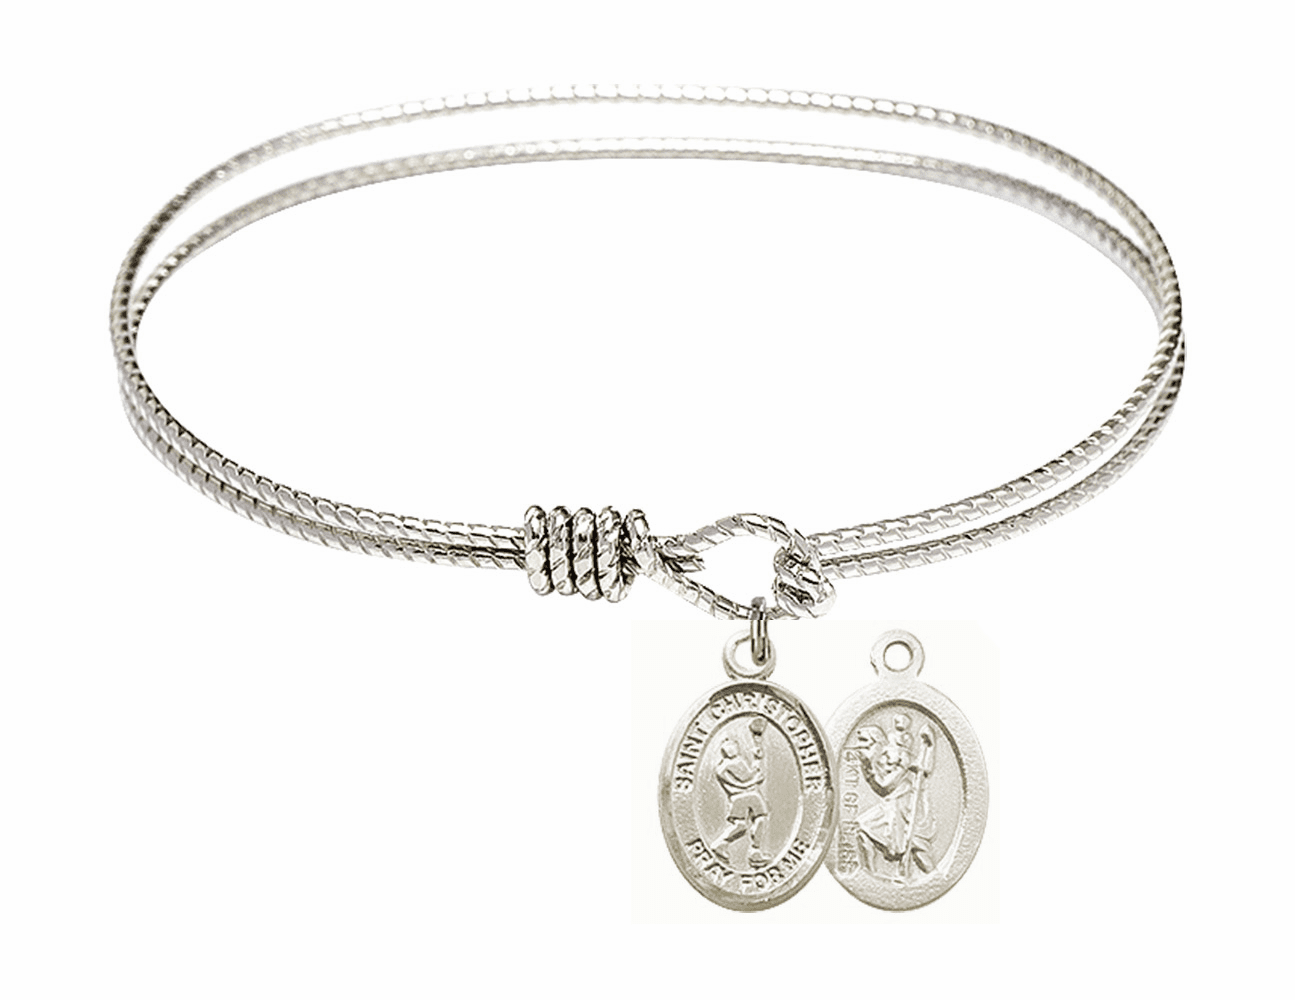 Twist Round Eye Hook St Christopher Lacrosse Bangle Charm Bracelet by Bliss